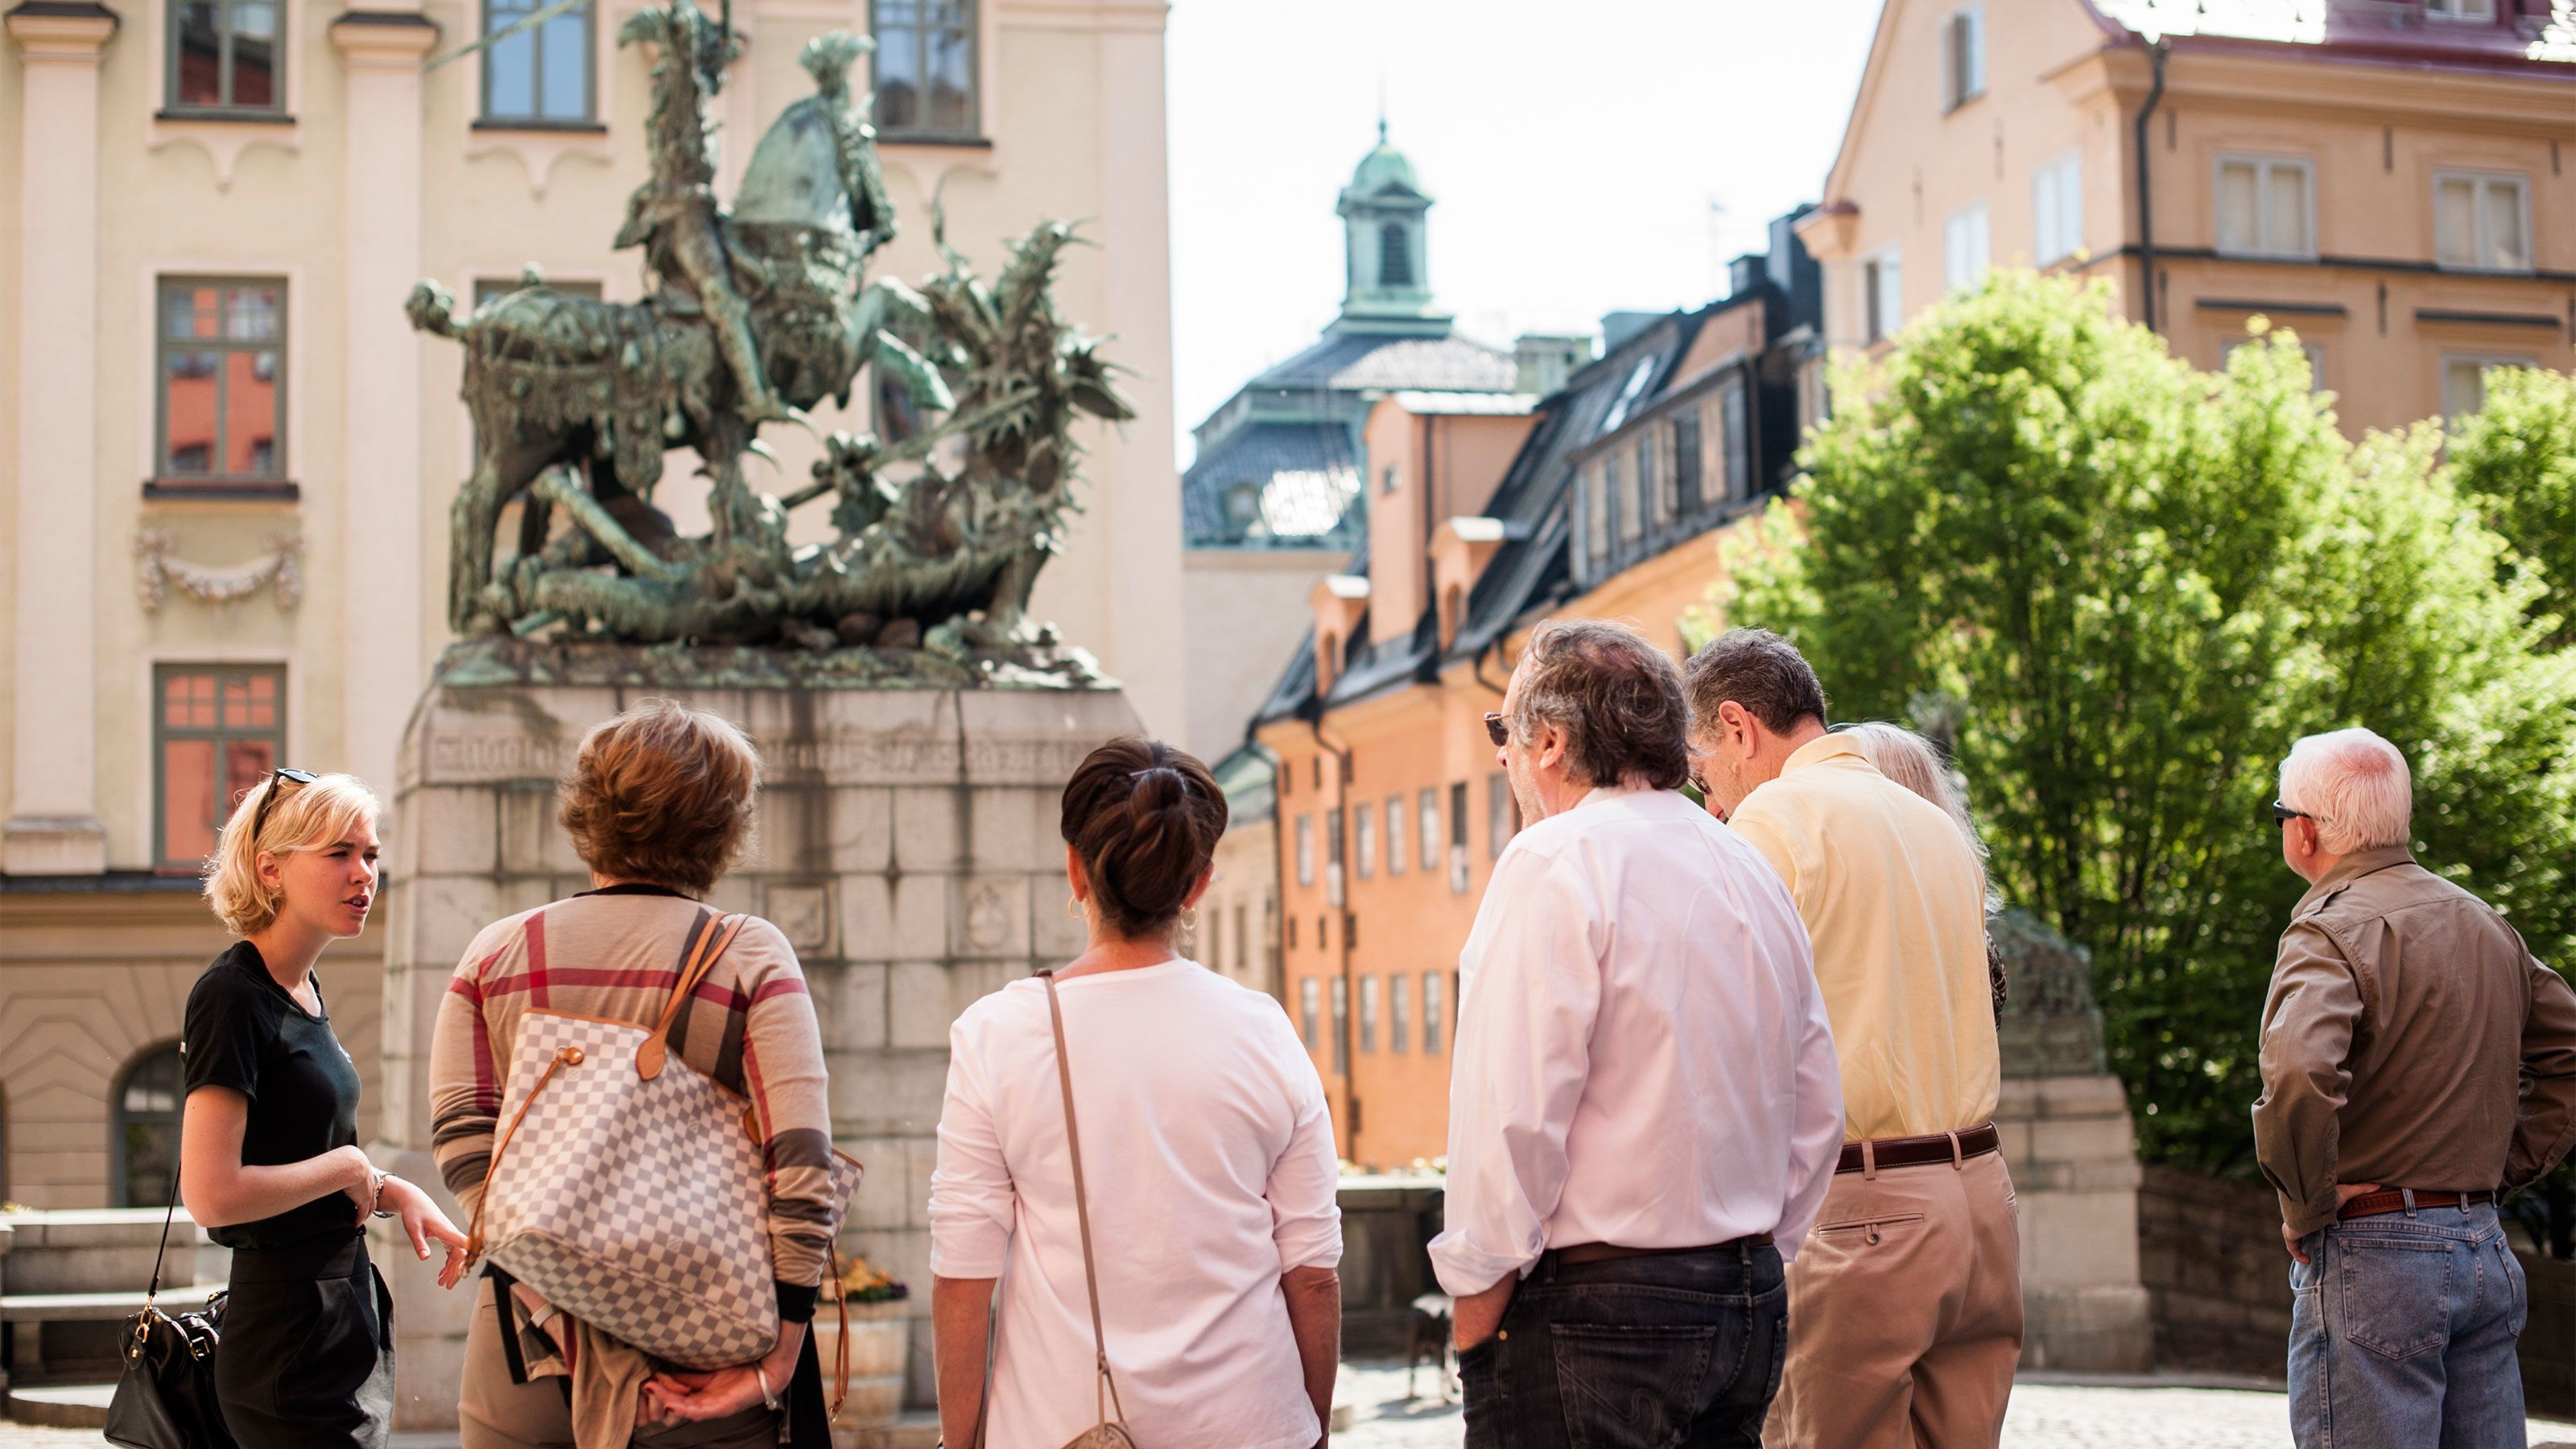 People admiring a statue in Stockholm